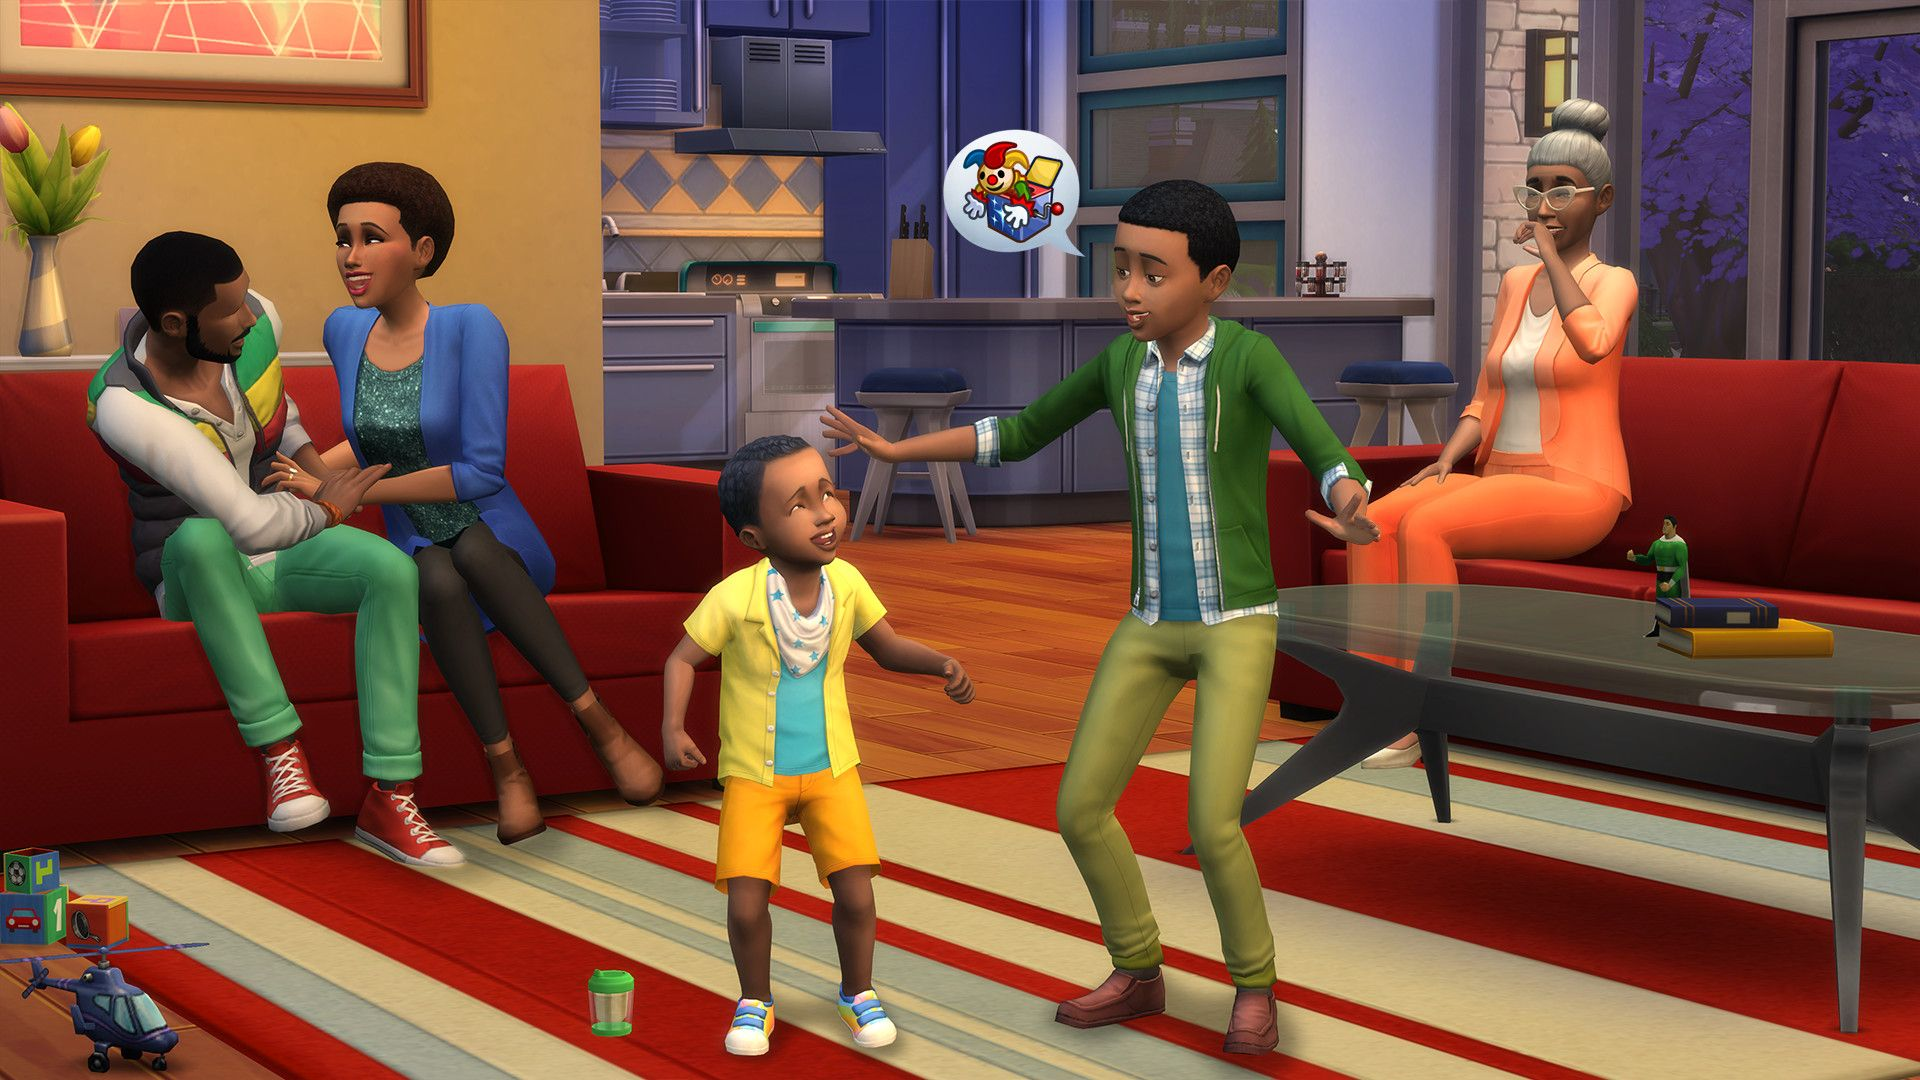 A typical living room scene from The Sims 4: two children play on the rug, while grown adults tickle each other on the sofa in the background.